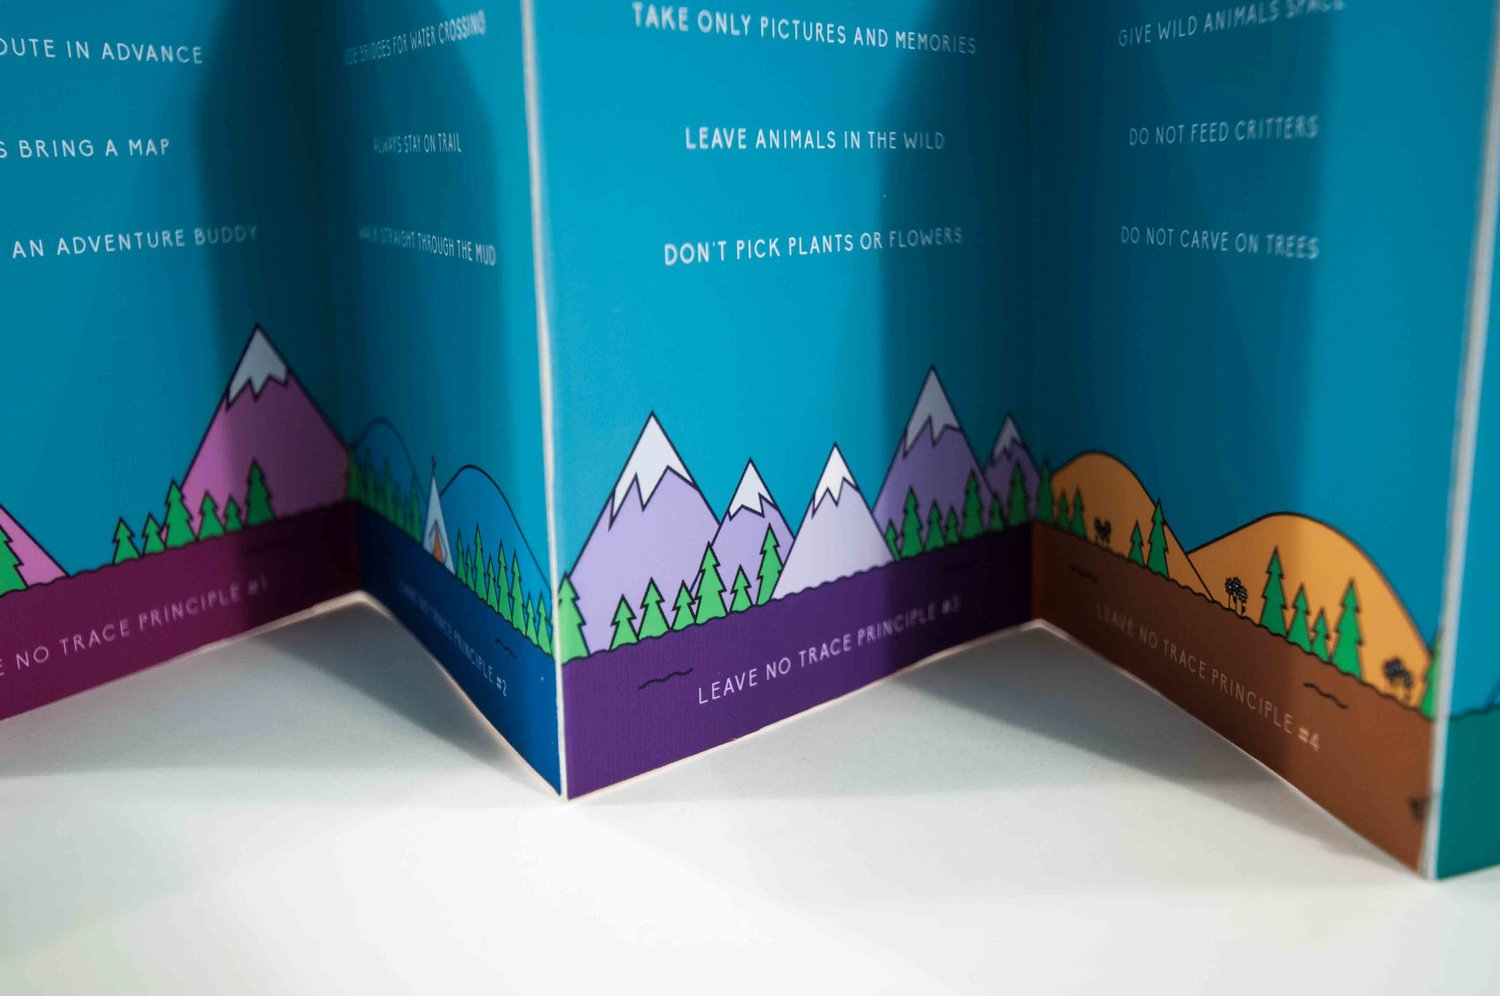 penn's Woods: Camping Guide - branding & campaign design